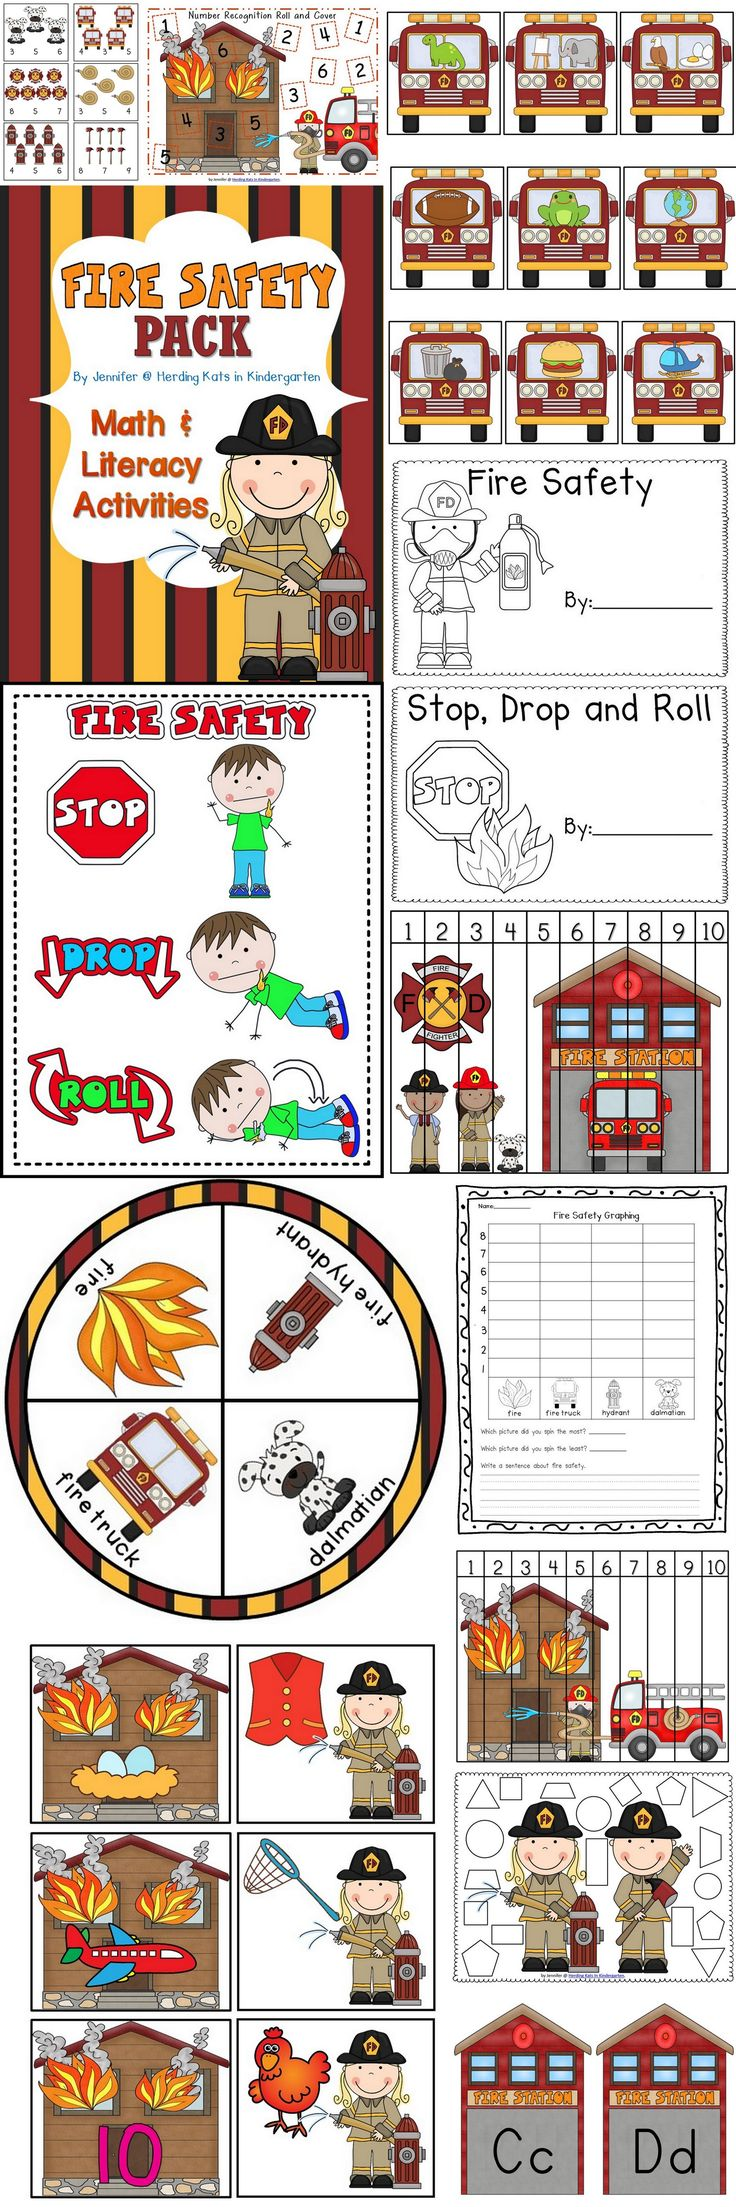 Fire Safety Math & Literacy Pack! This pack has 10 Math Activities and 4 Literacy Activities - including 2 Emergent Readers! Reinforce Fire Safety while still teaching basic skills! This pack is geared towards Pre-K and K students but can serve as RTI for 1st grade! Check out the Preview for a FREEBIE